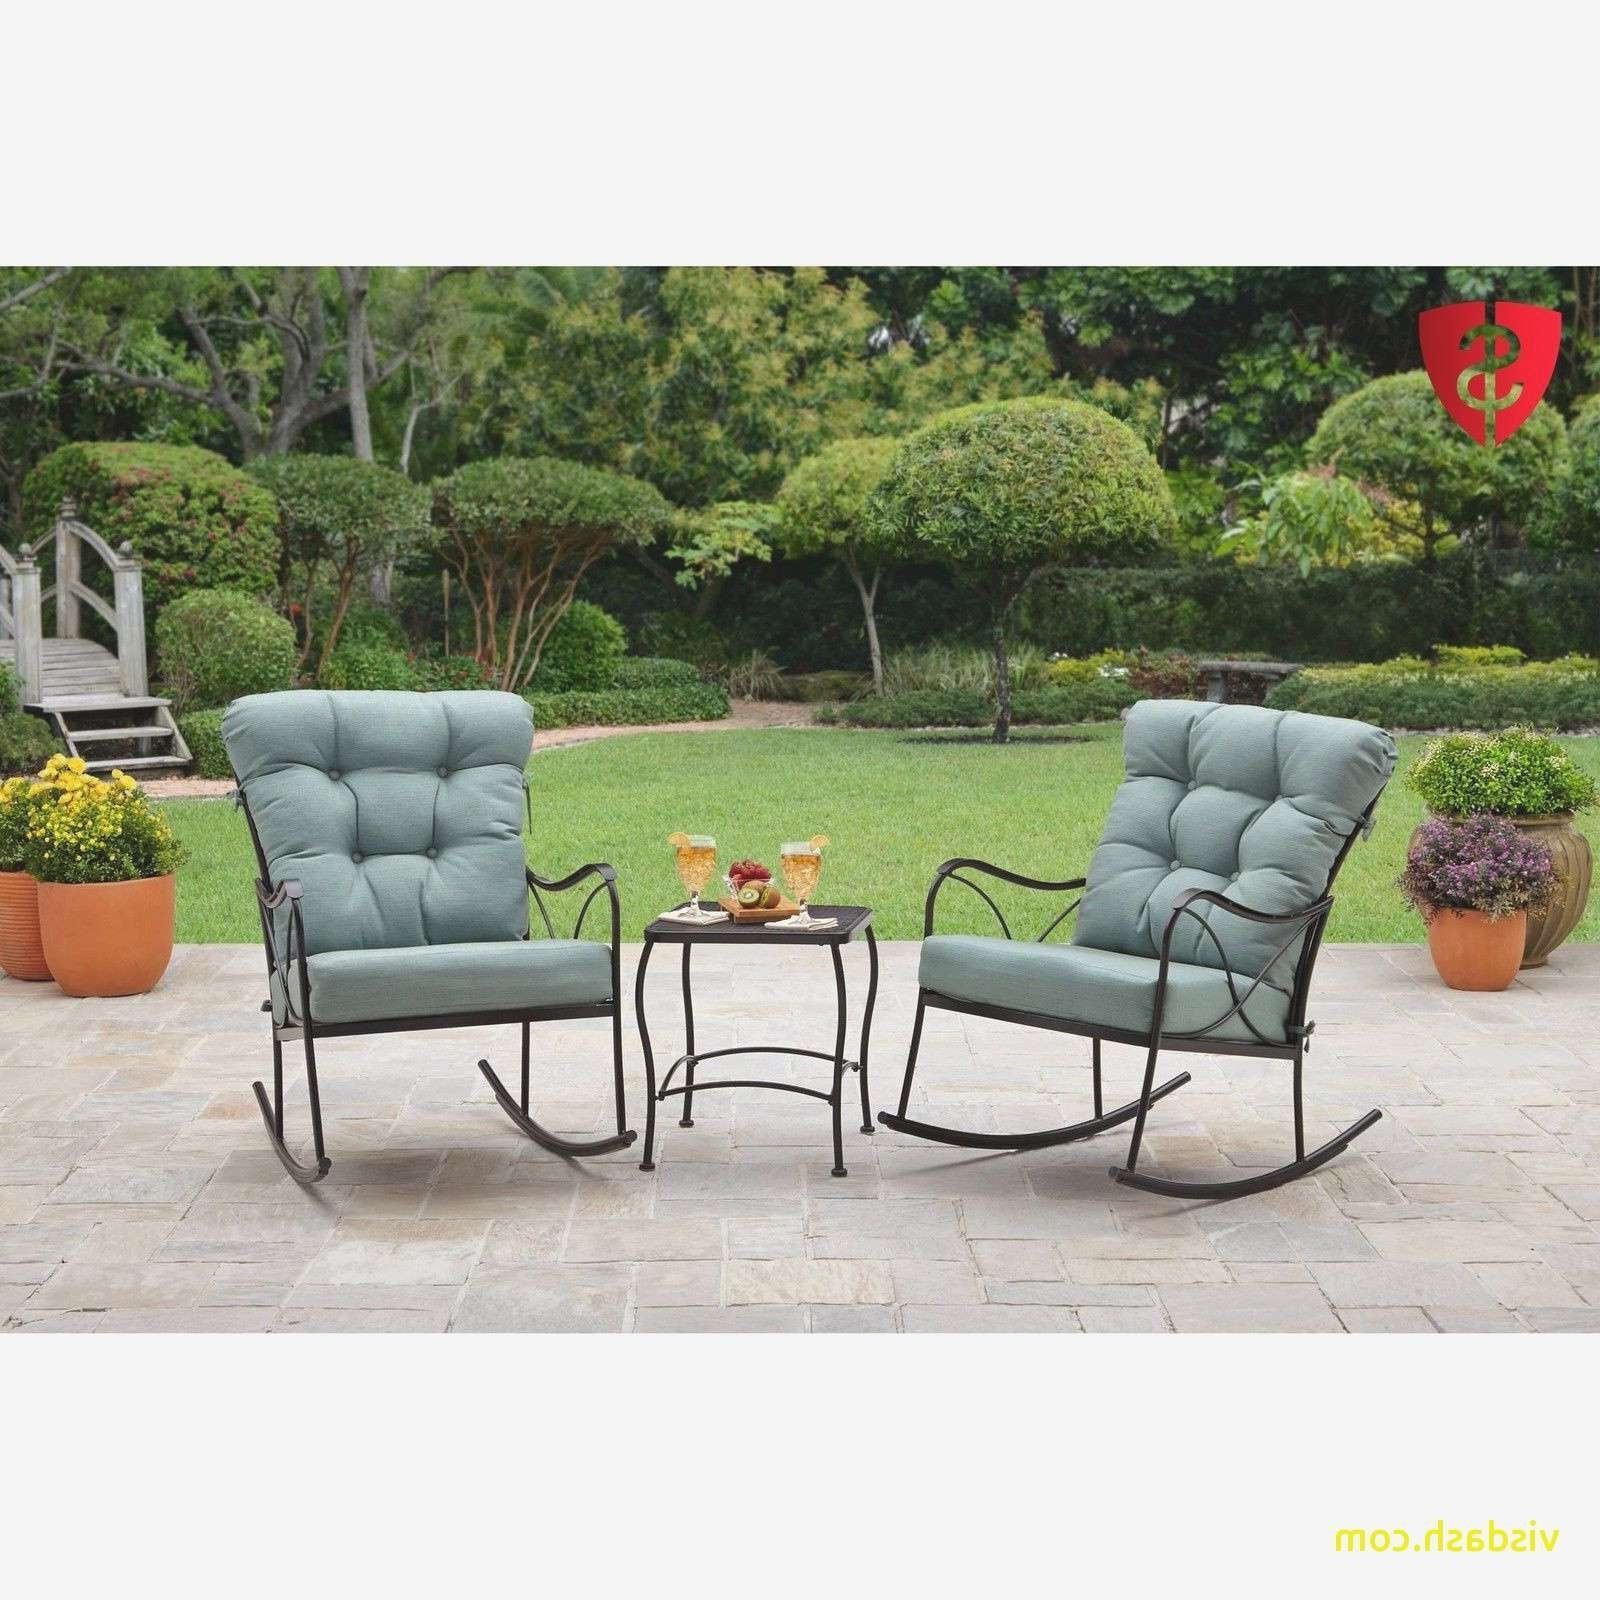 Most Popular Nfm Patio Conversation Sets Within 30 Fresh Patio Conversation Sets On Sale Design – Jsmorganicsfarm (View 14 of 20)